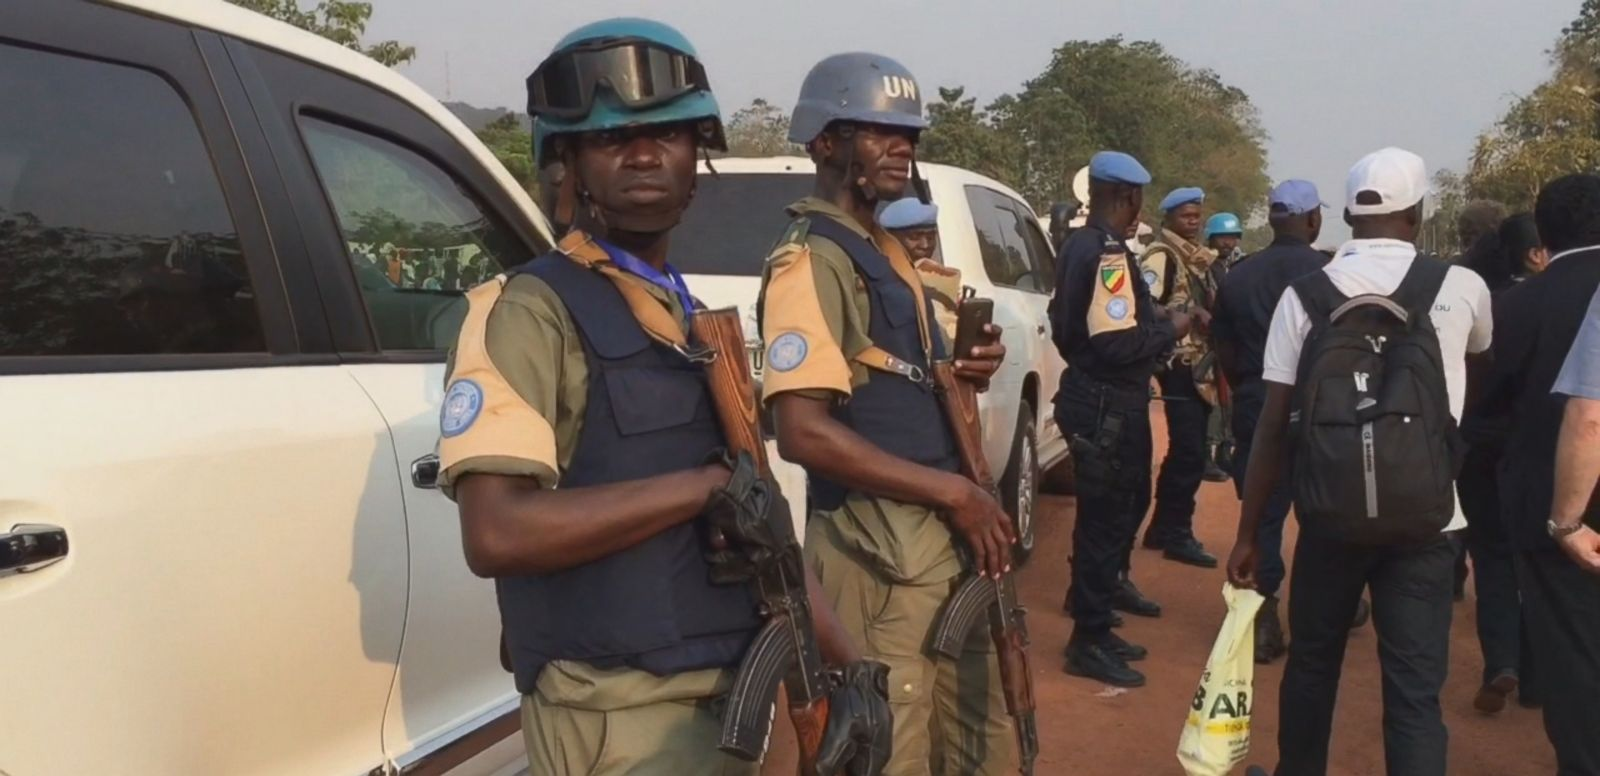 VIDEO: U.N. peacekeepers are on patrol with AK-47 rifles during the pontiff's visit.